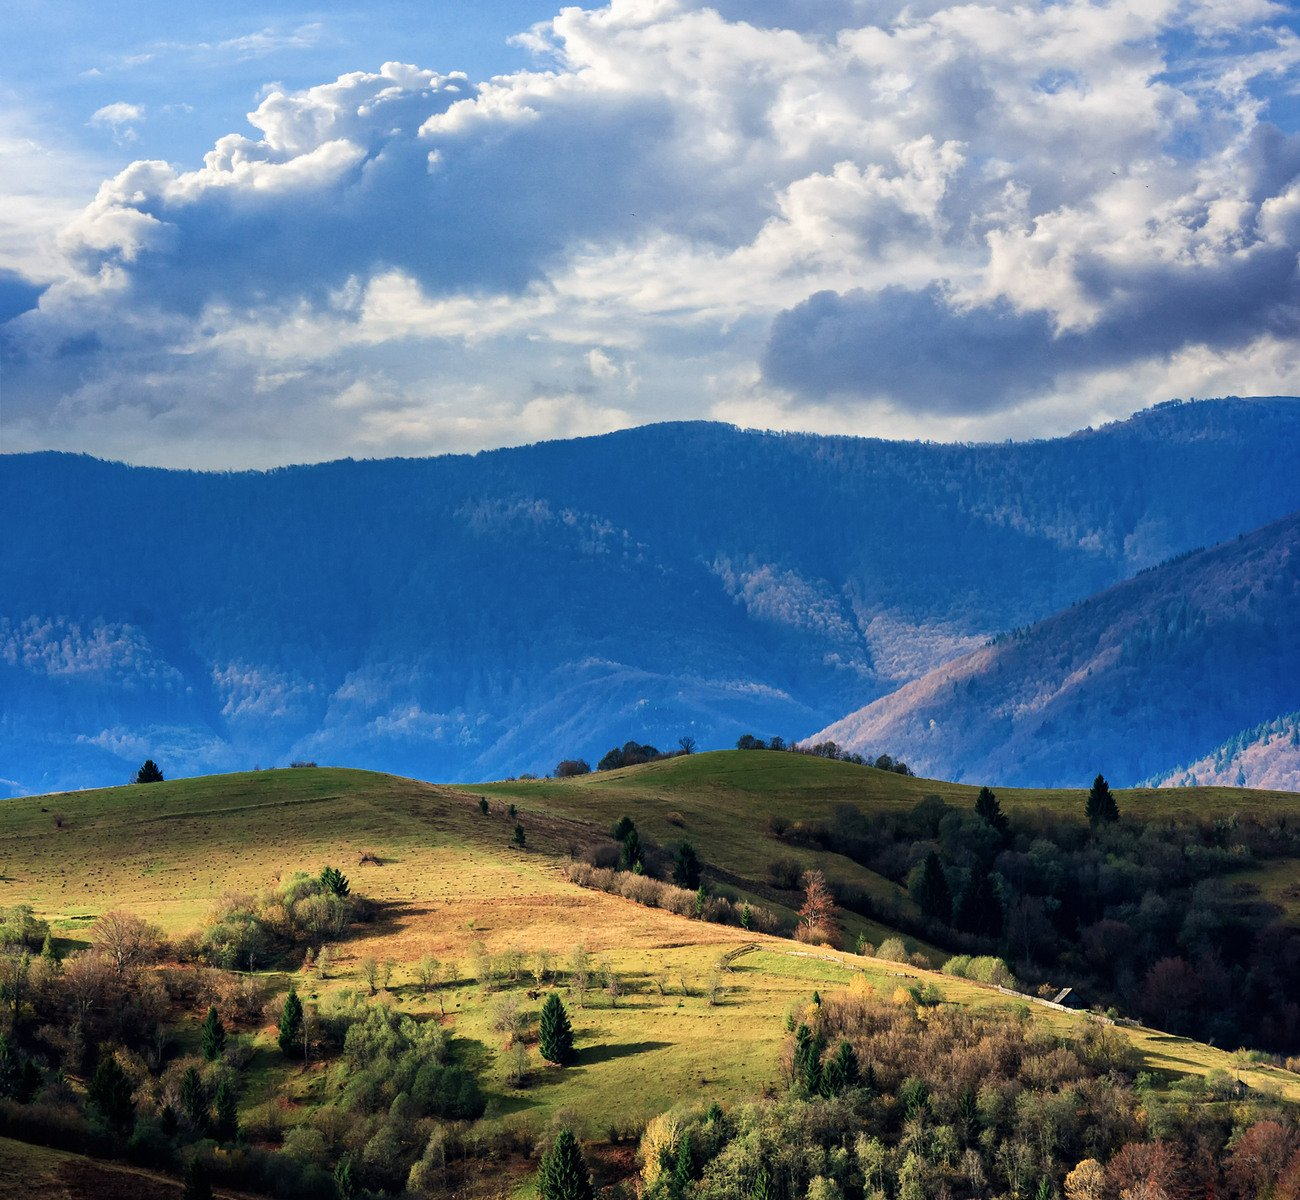 pine trees near valley in mountains on hillside, photo ...